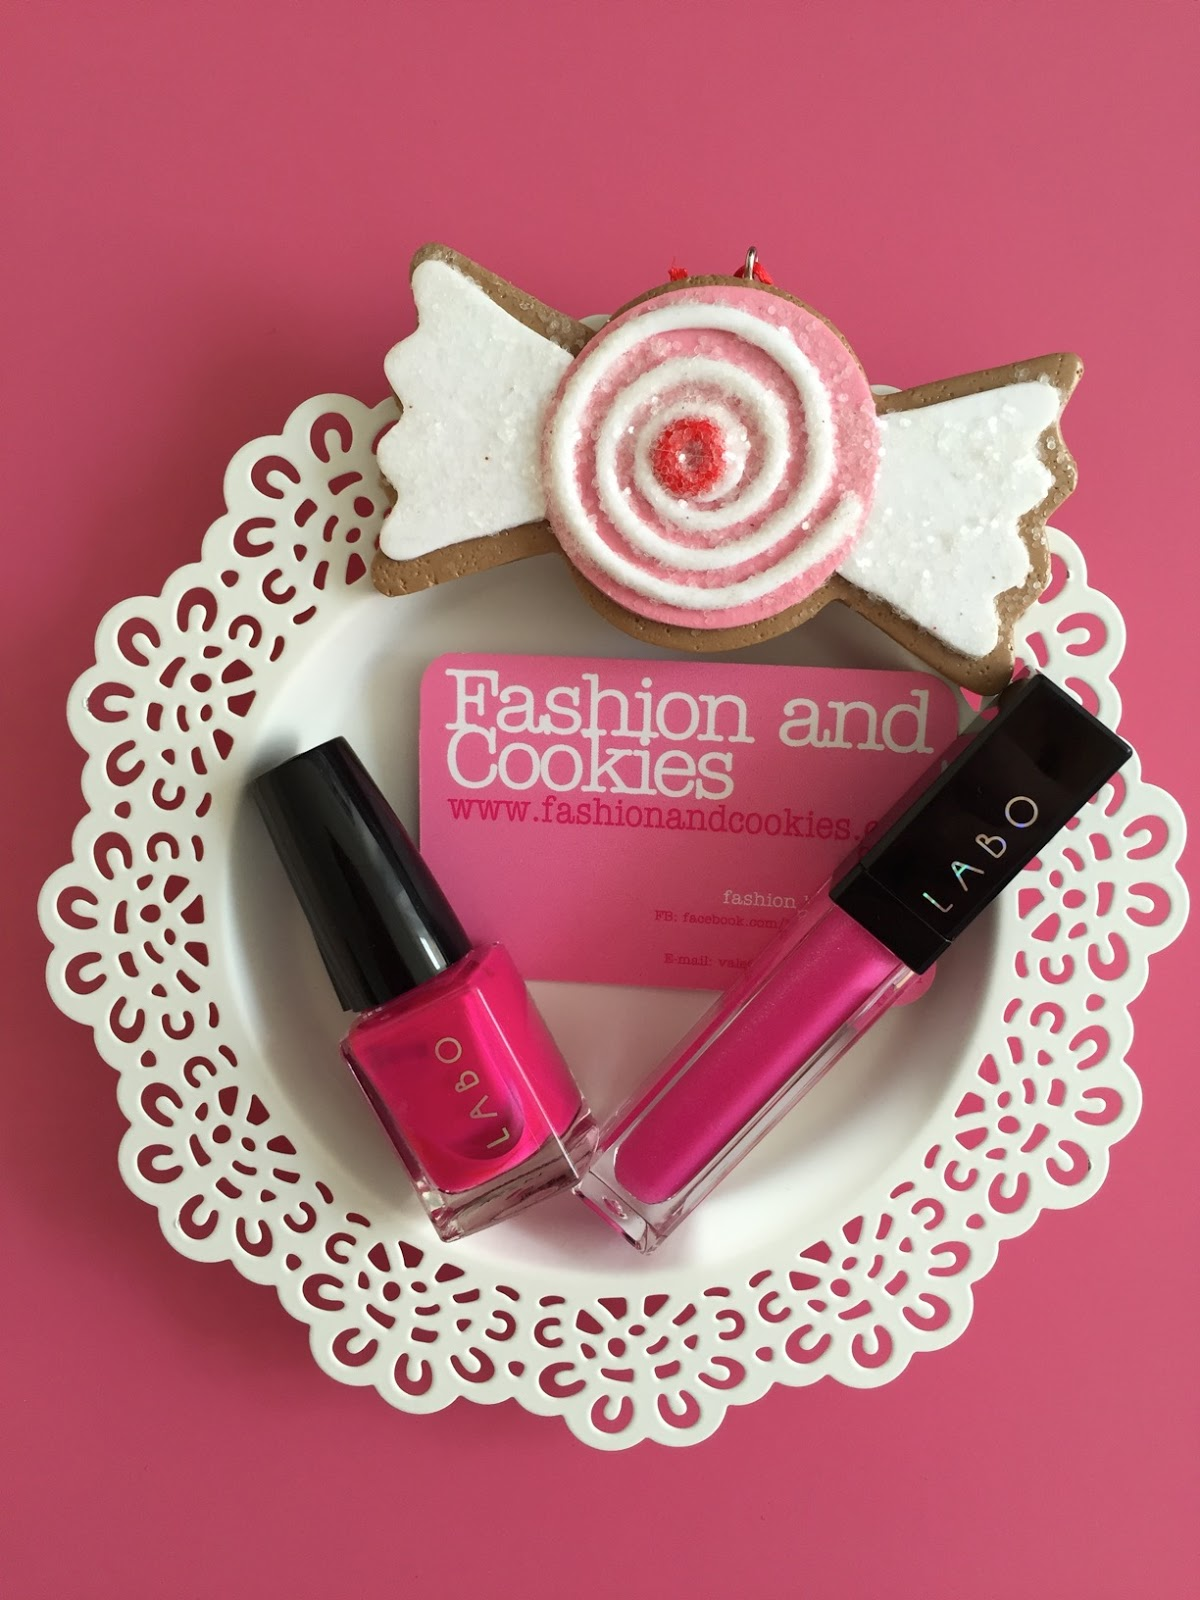 Labo Make-Up Led pink gloss and nail polish on Fashion and Cookies fashion and beauty blog, fashion and beauty blogger